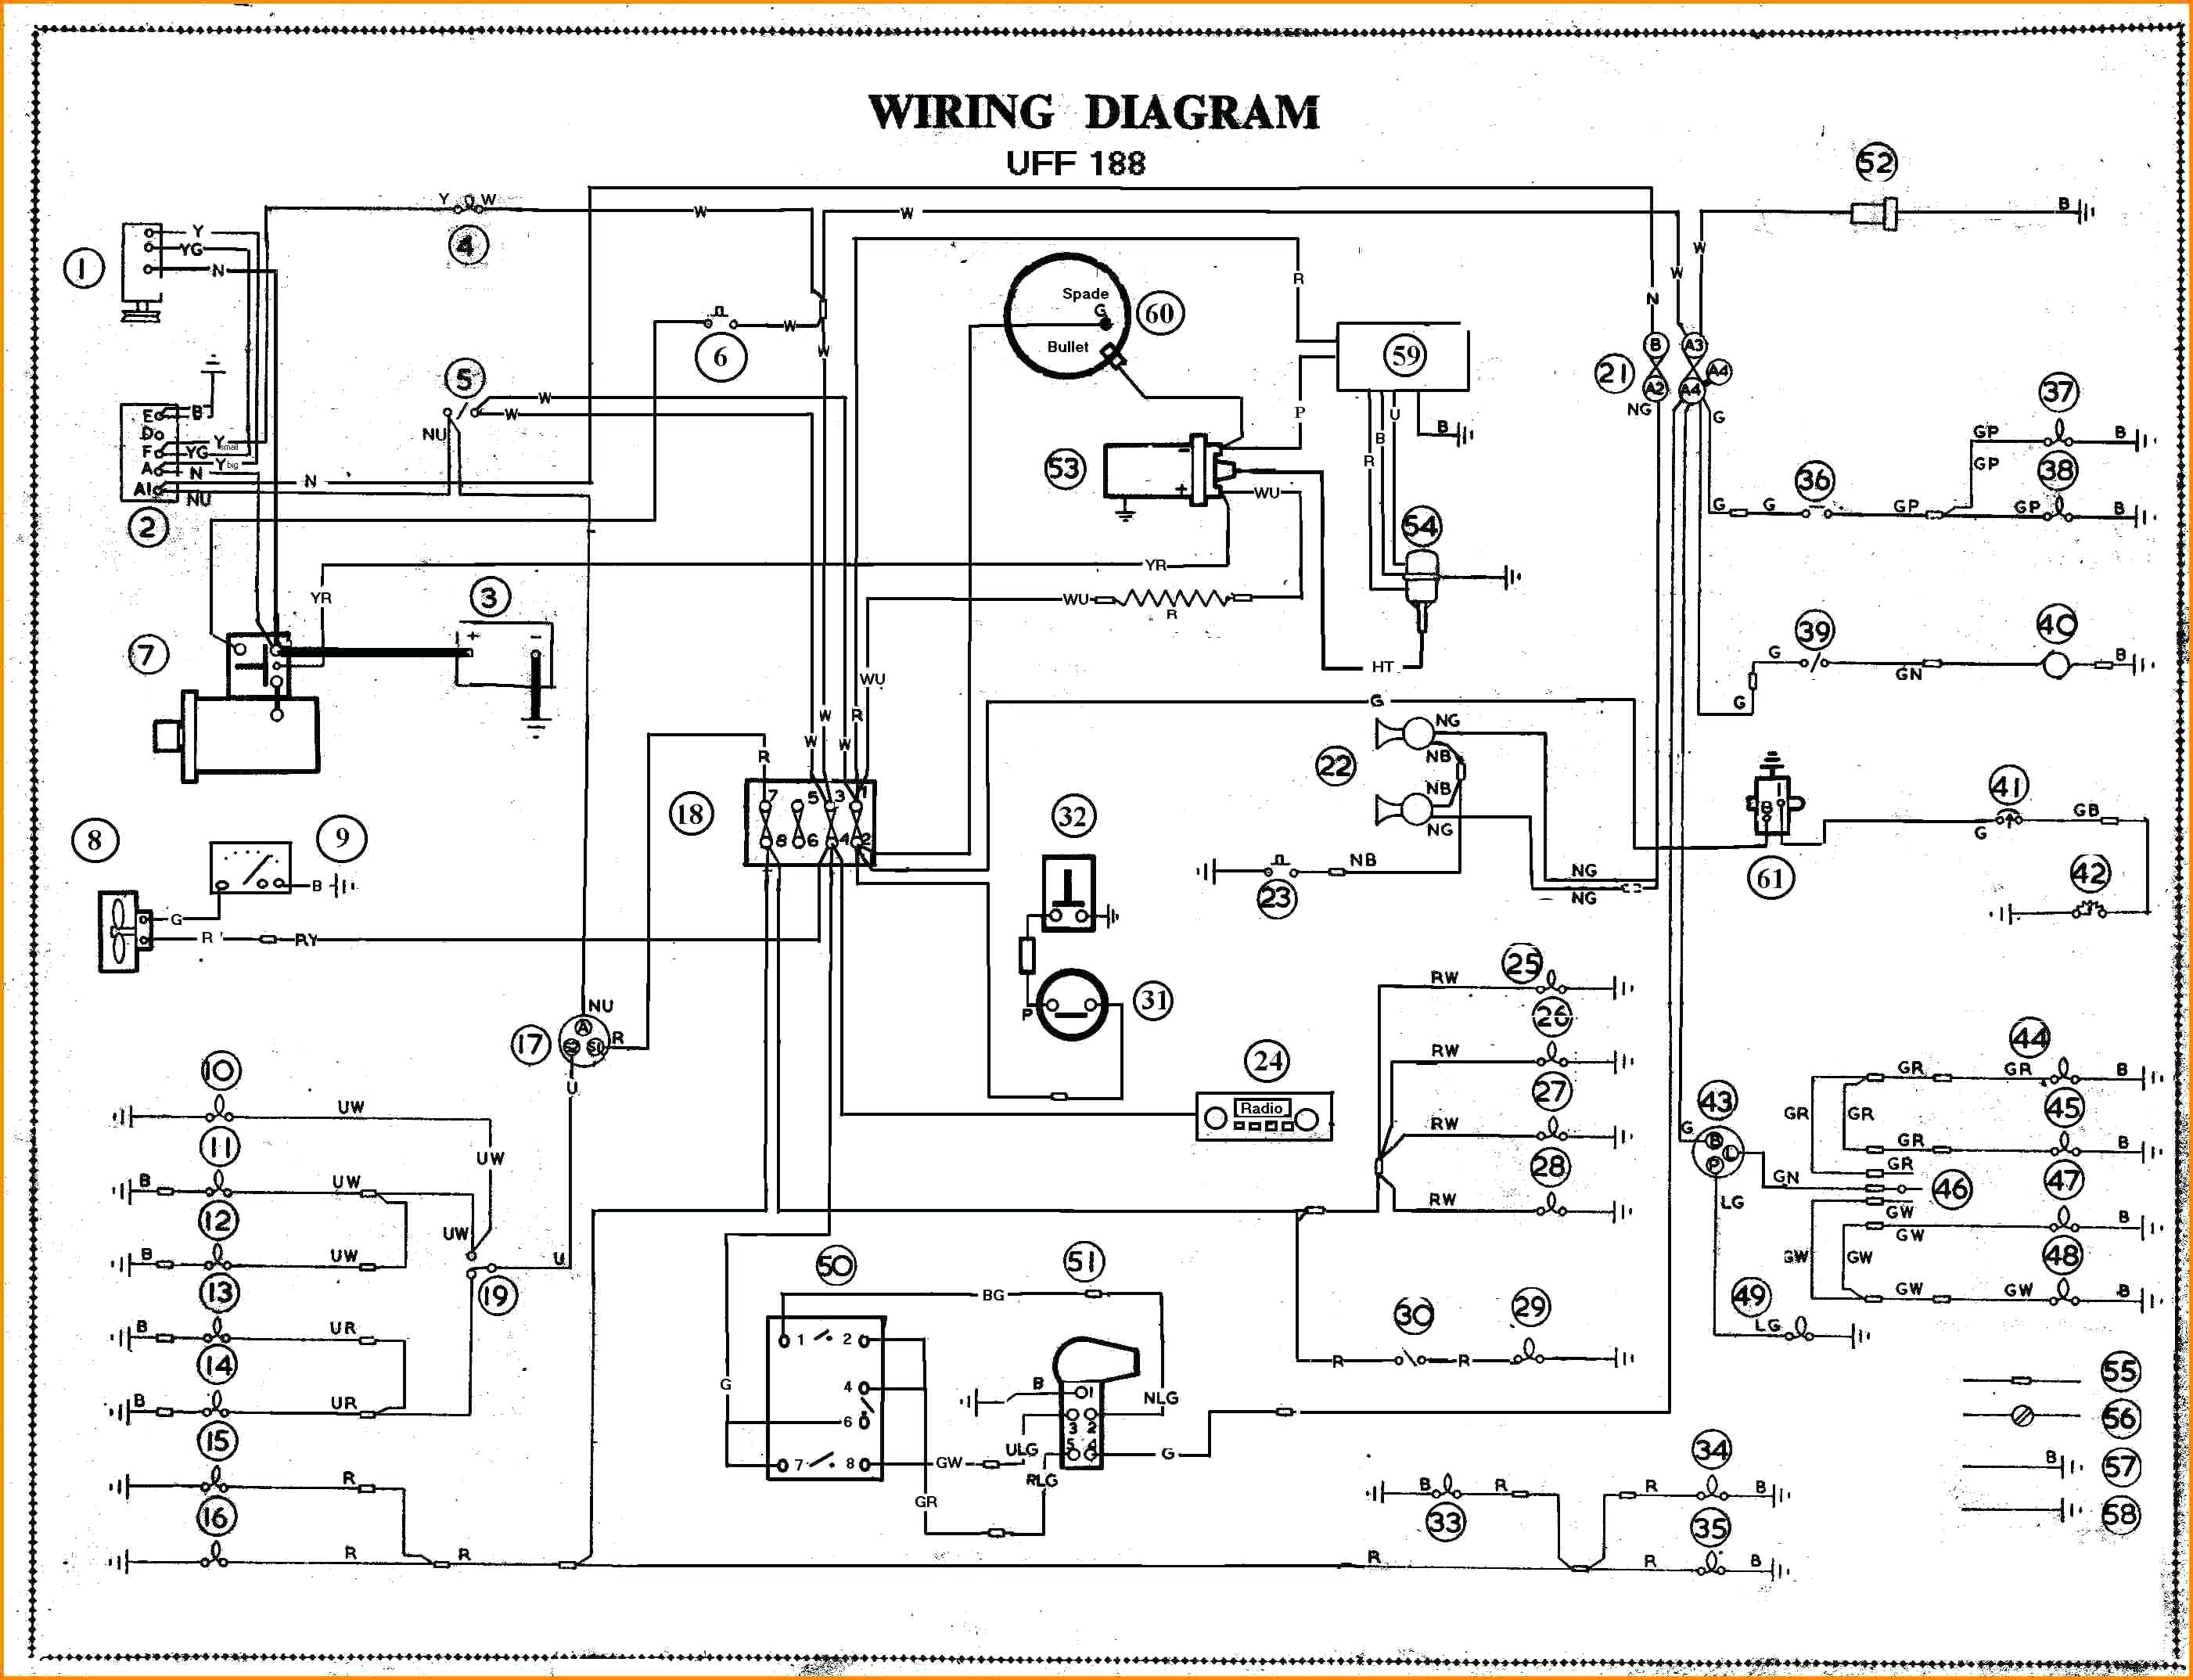 98 Club Car Wiring Diagram from static-cdn.imageservice.cloud